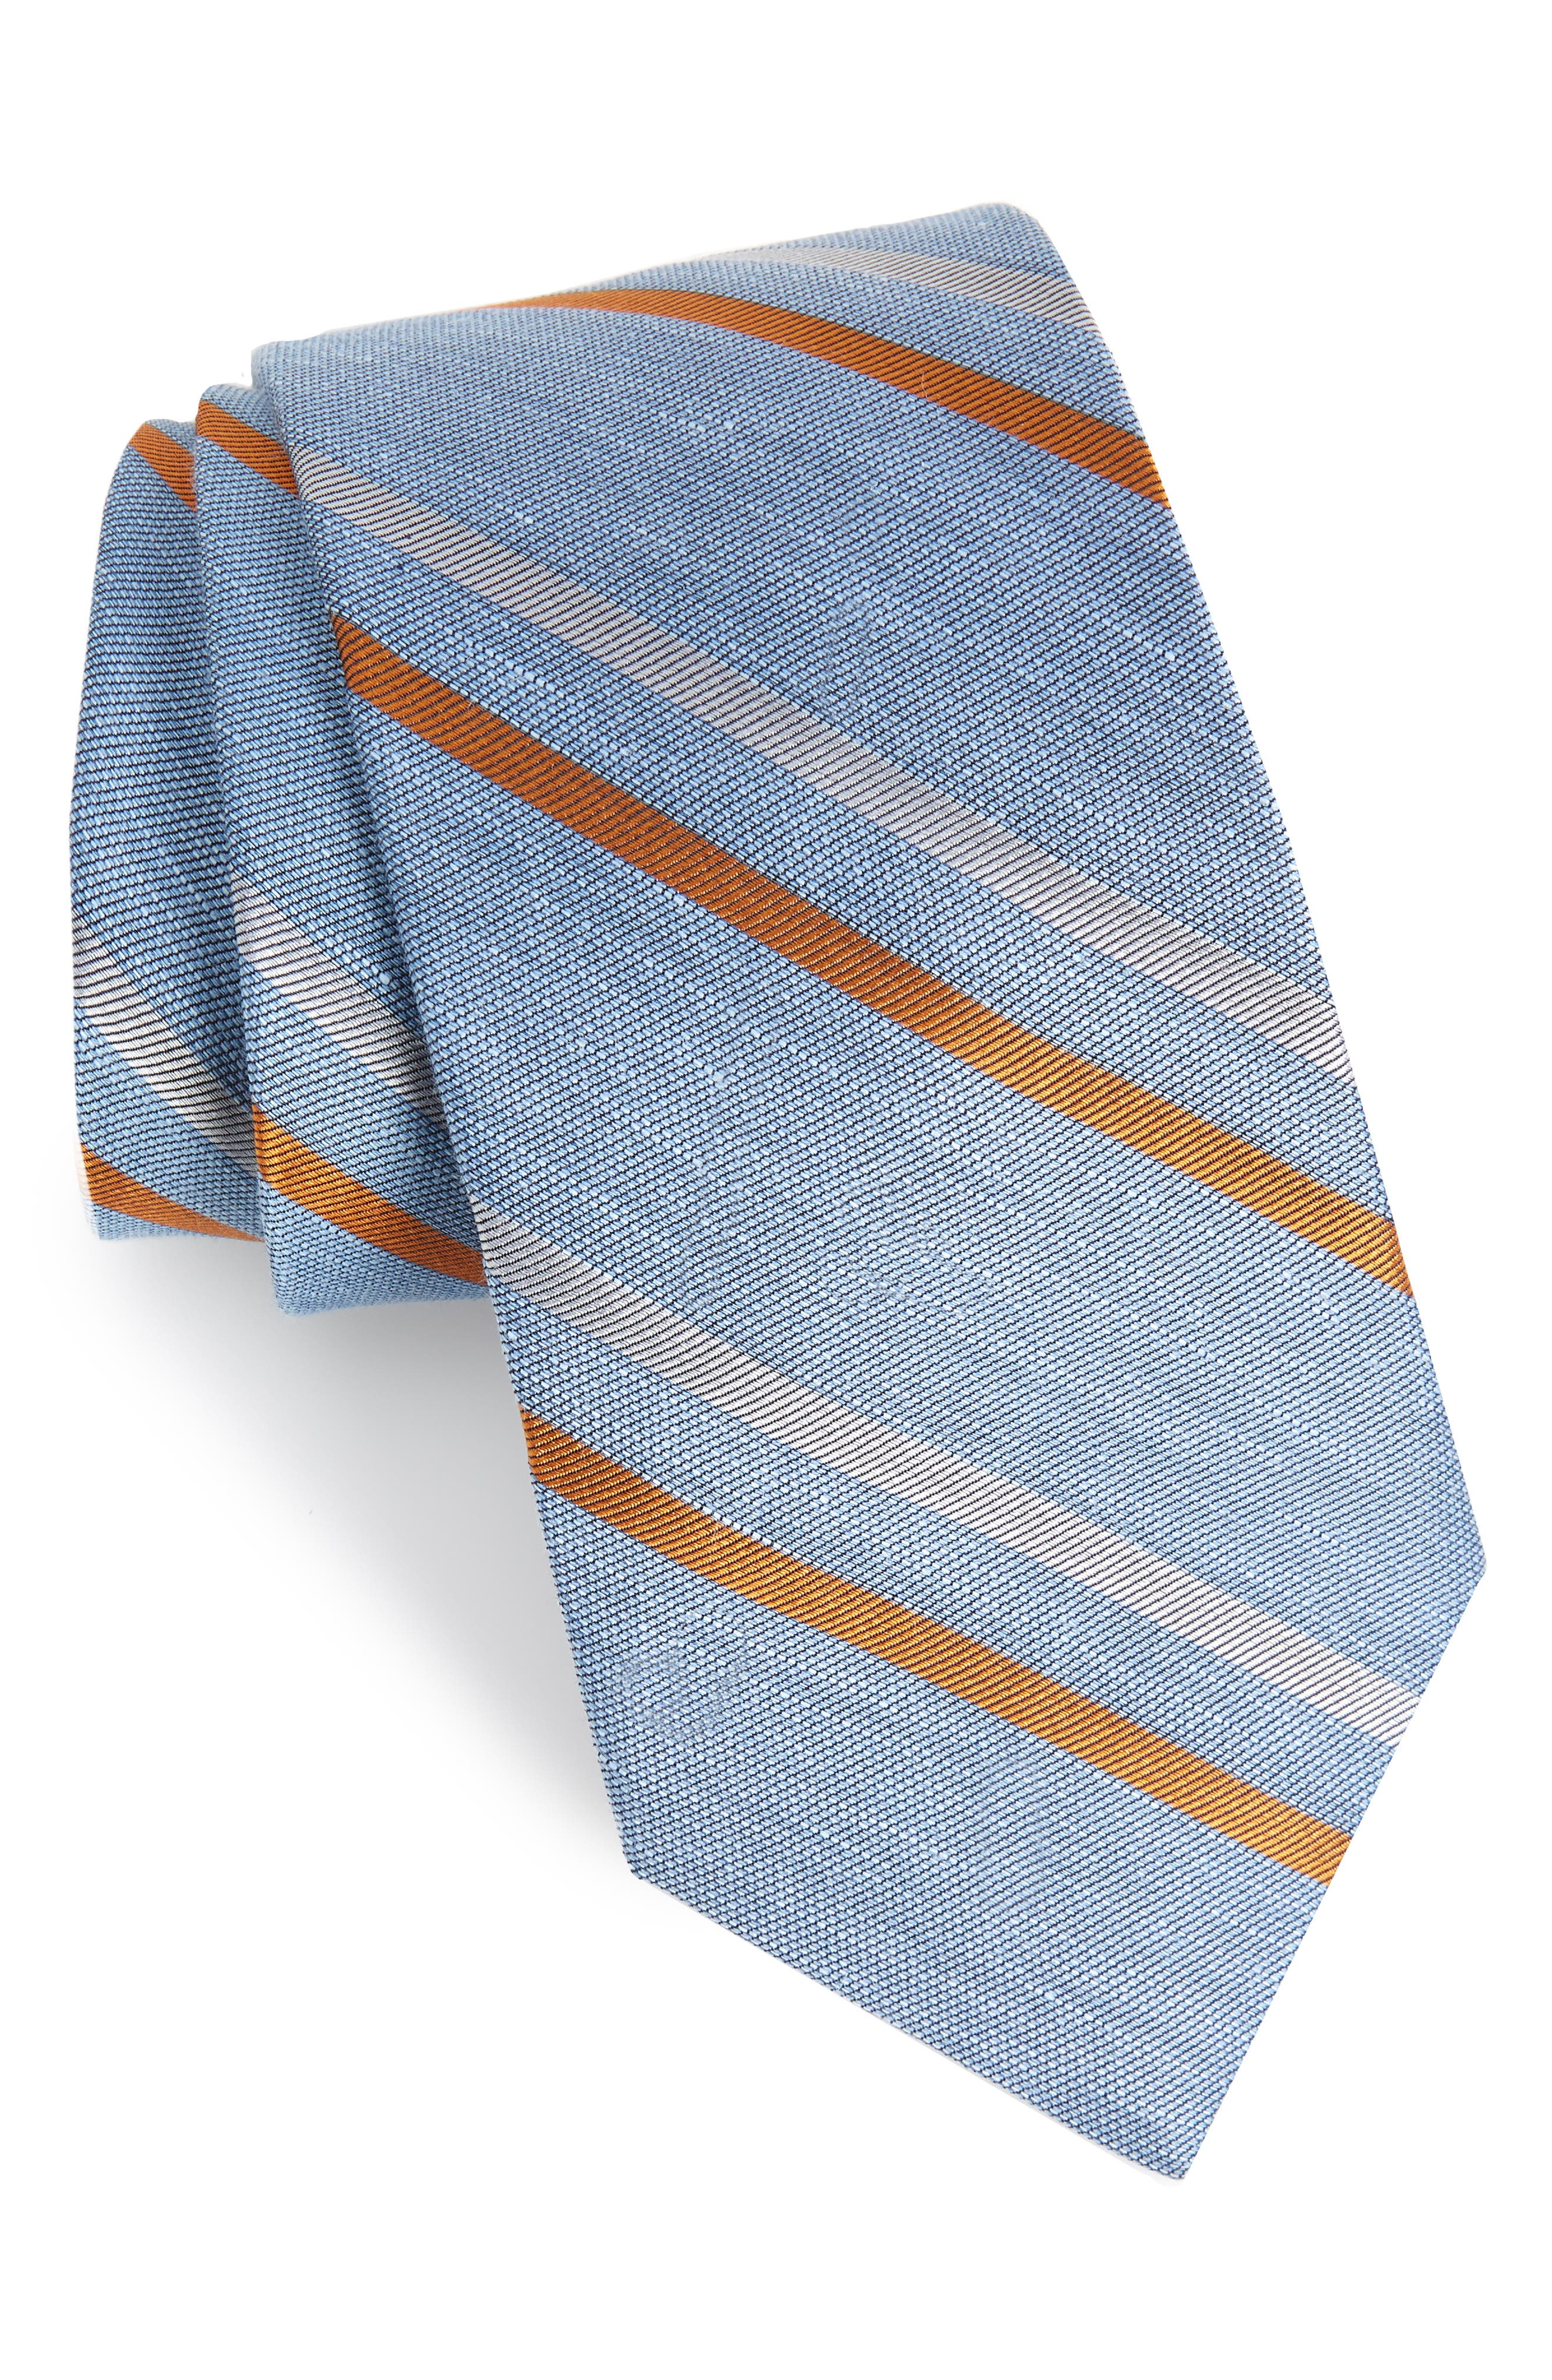 Pep Stripe Tie,                         Main,                         color, Light Blue